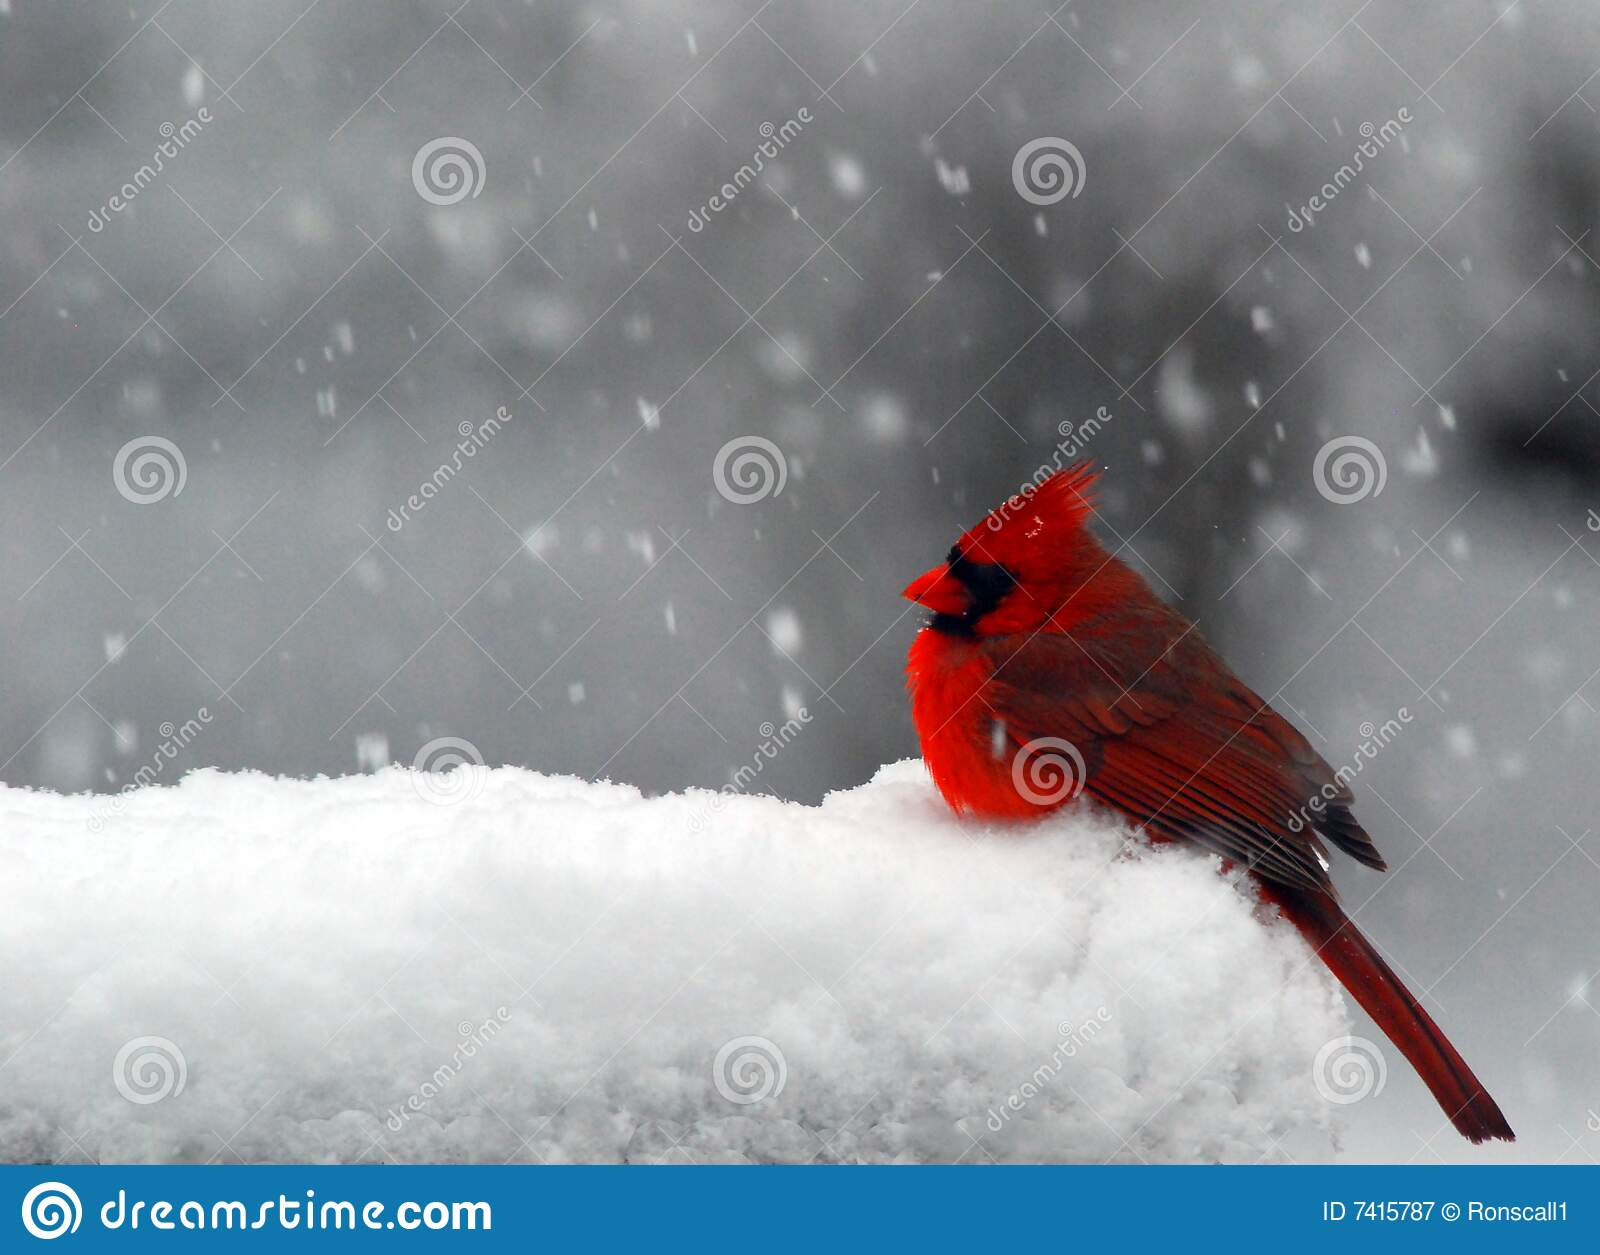 Beautiful Snow Falling Wallpapers Cardinal In Snow Stock Image Image Of Freezing Snow